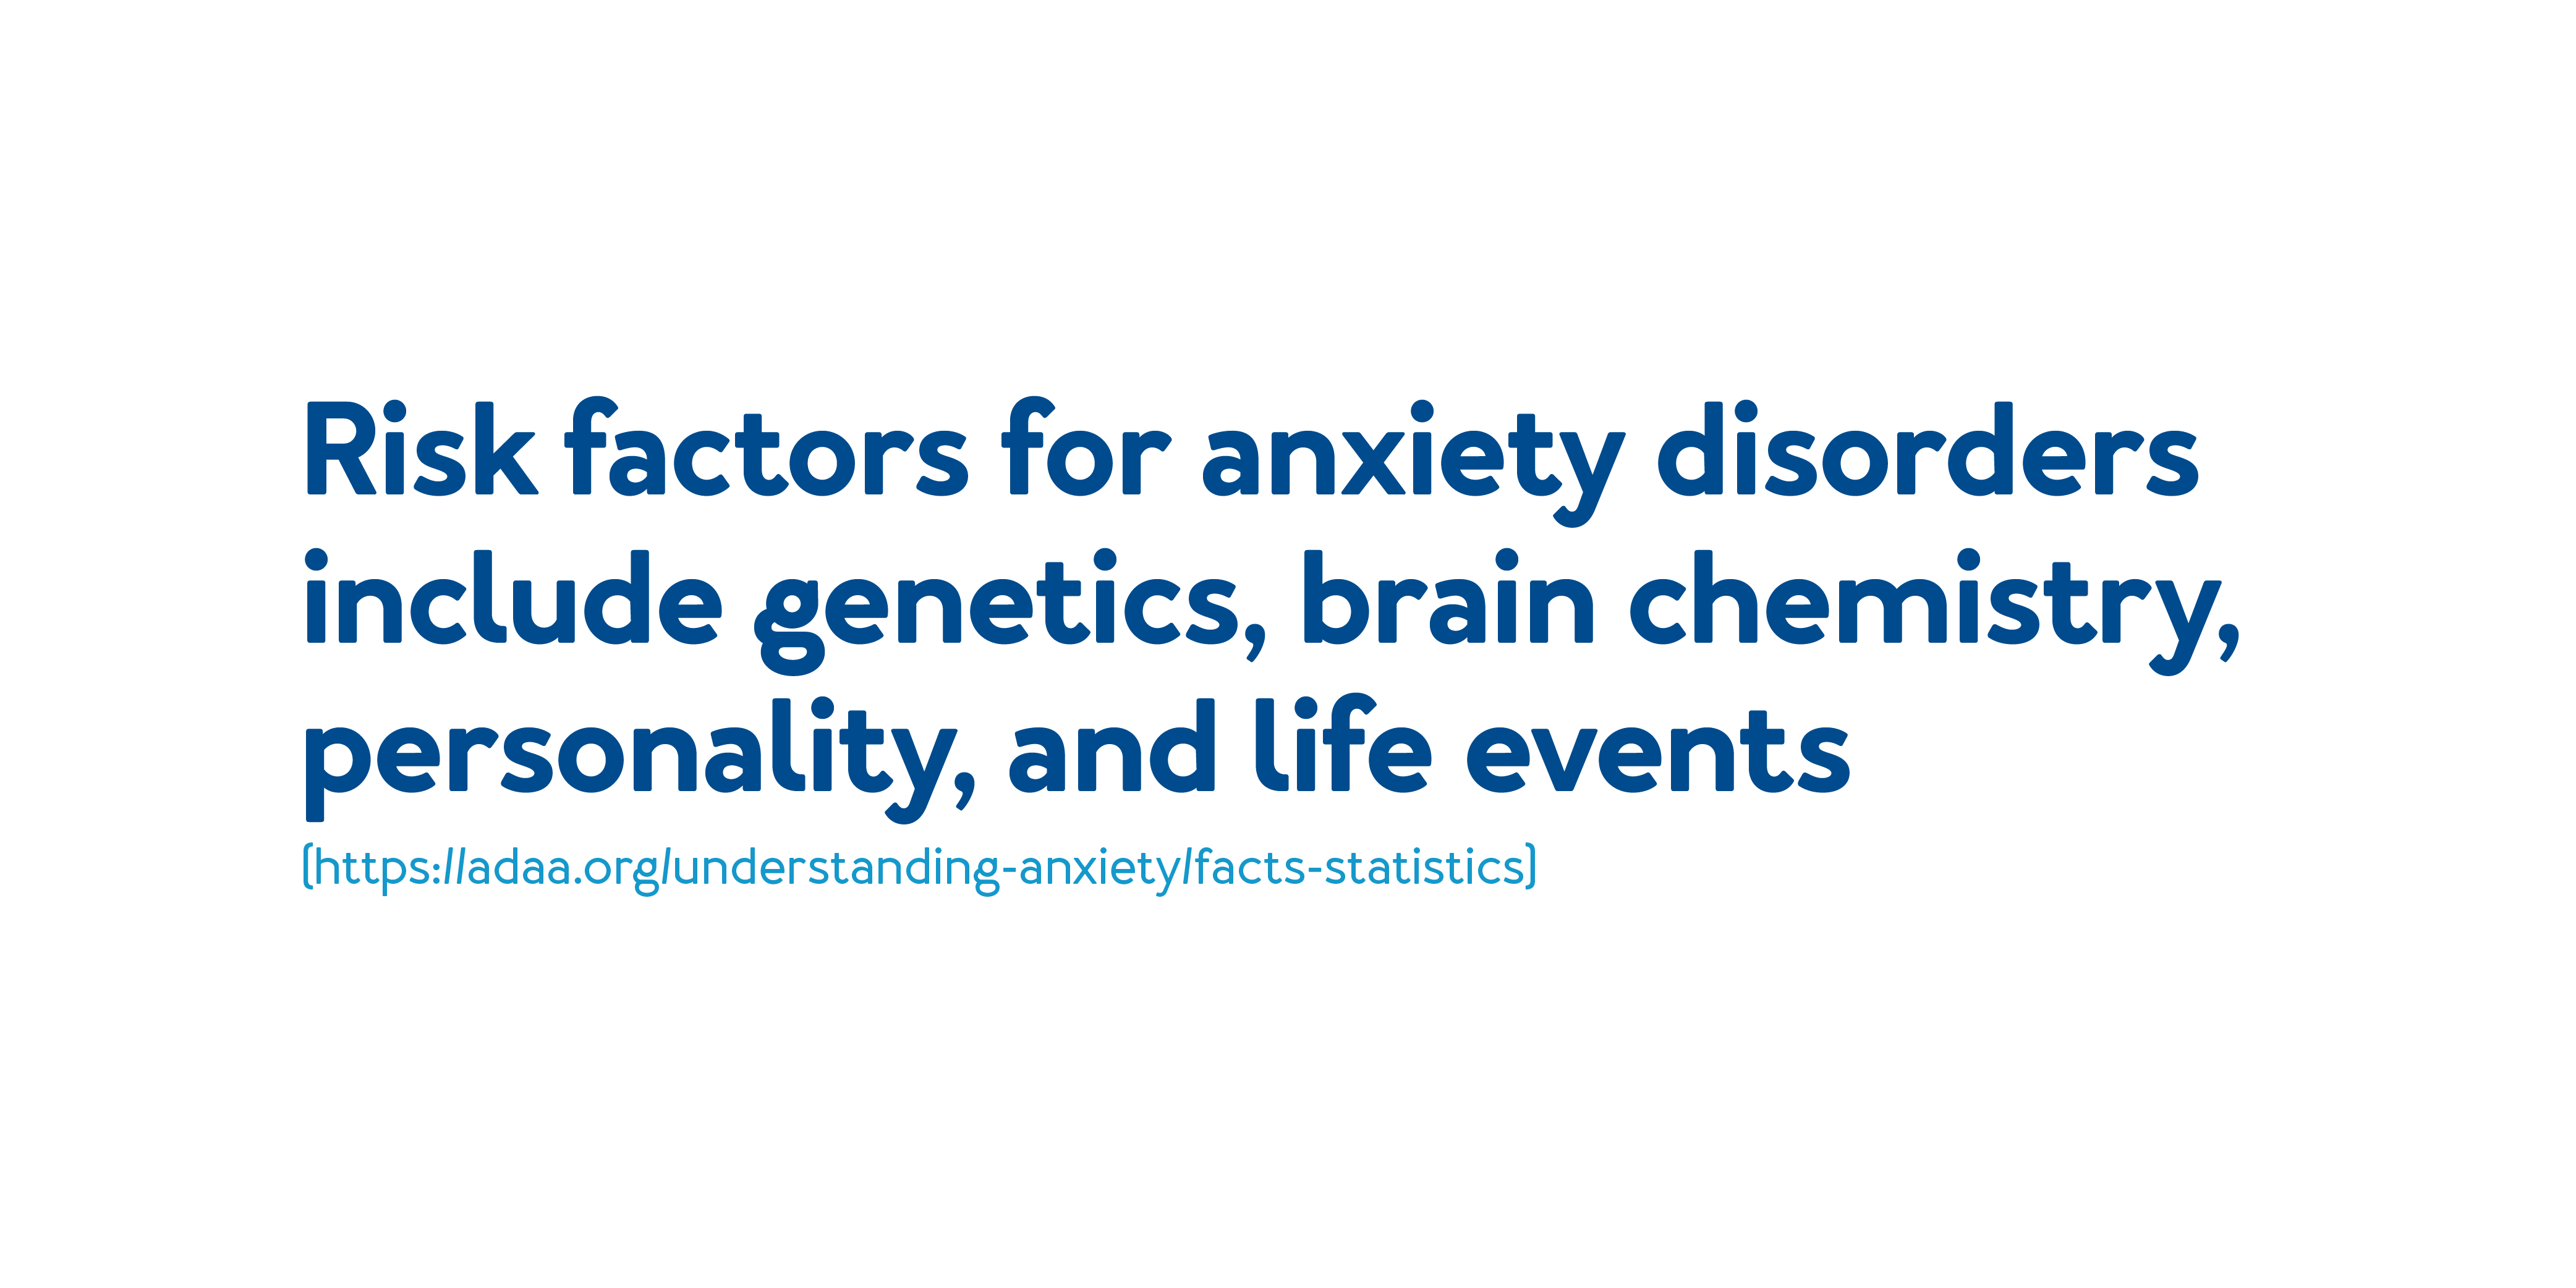 Risk factors for anxiety disorders include genetics, brain chemistry, personality, and life events.